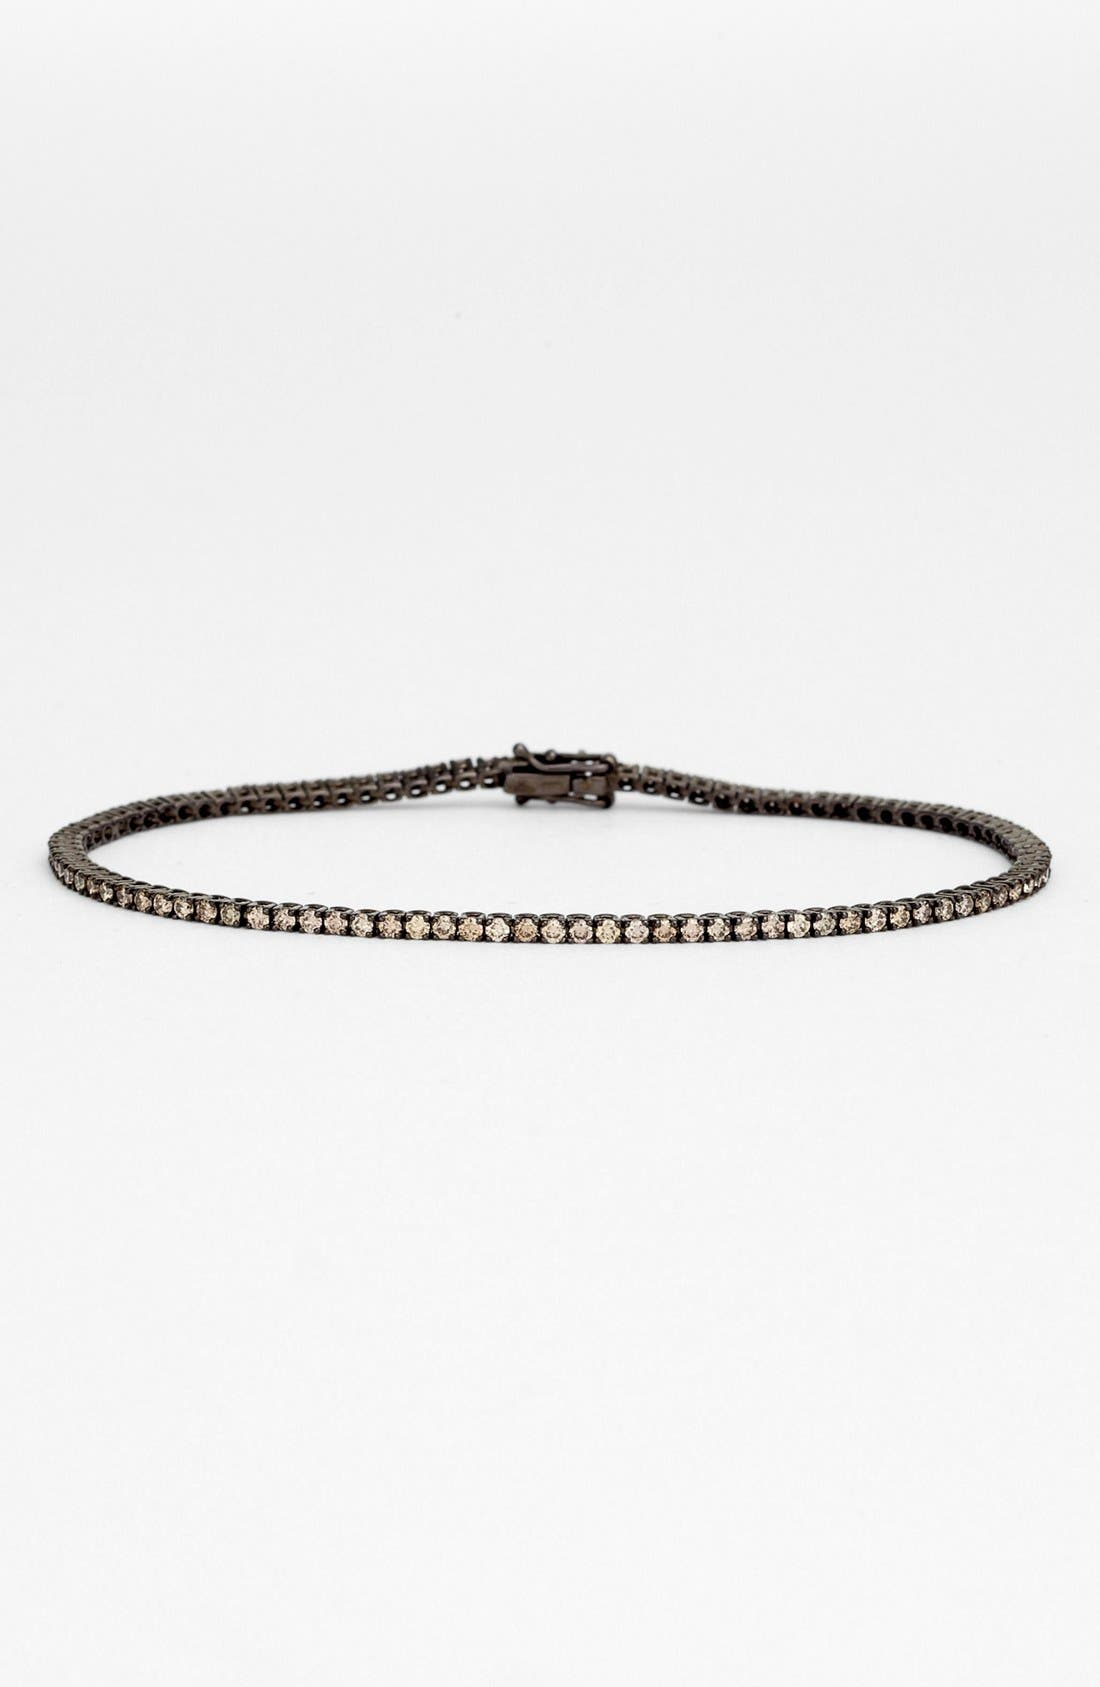 Main Image - Kwiat Diamond Line Bracelet